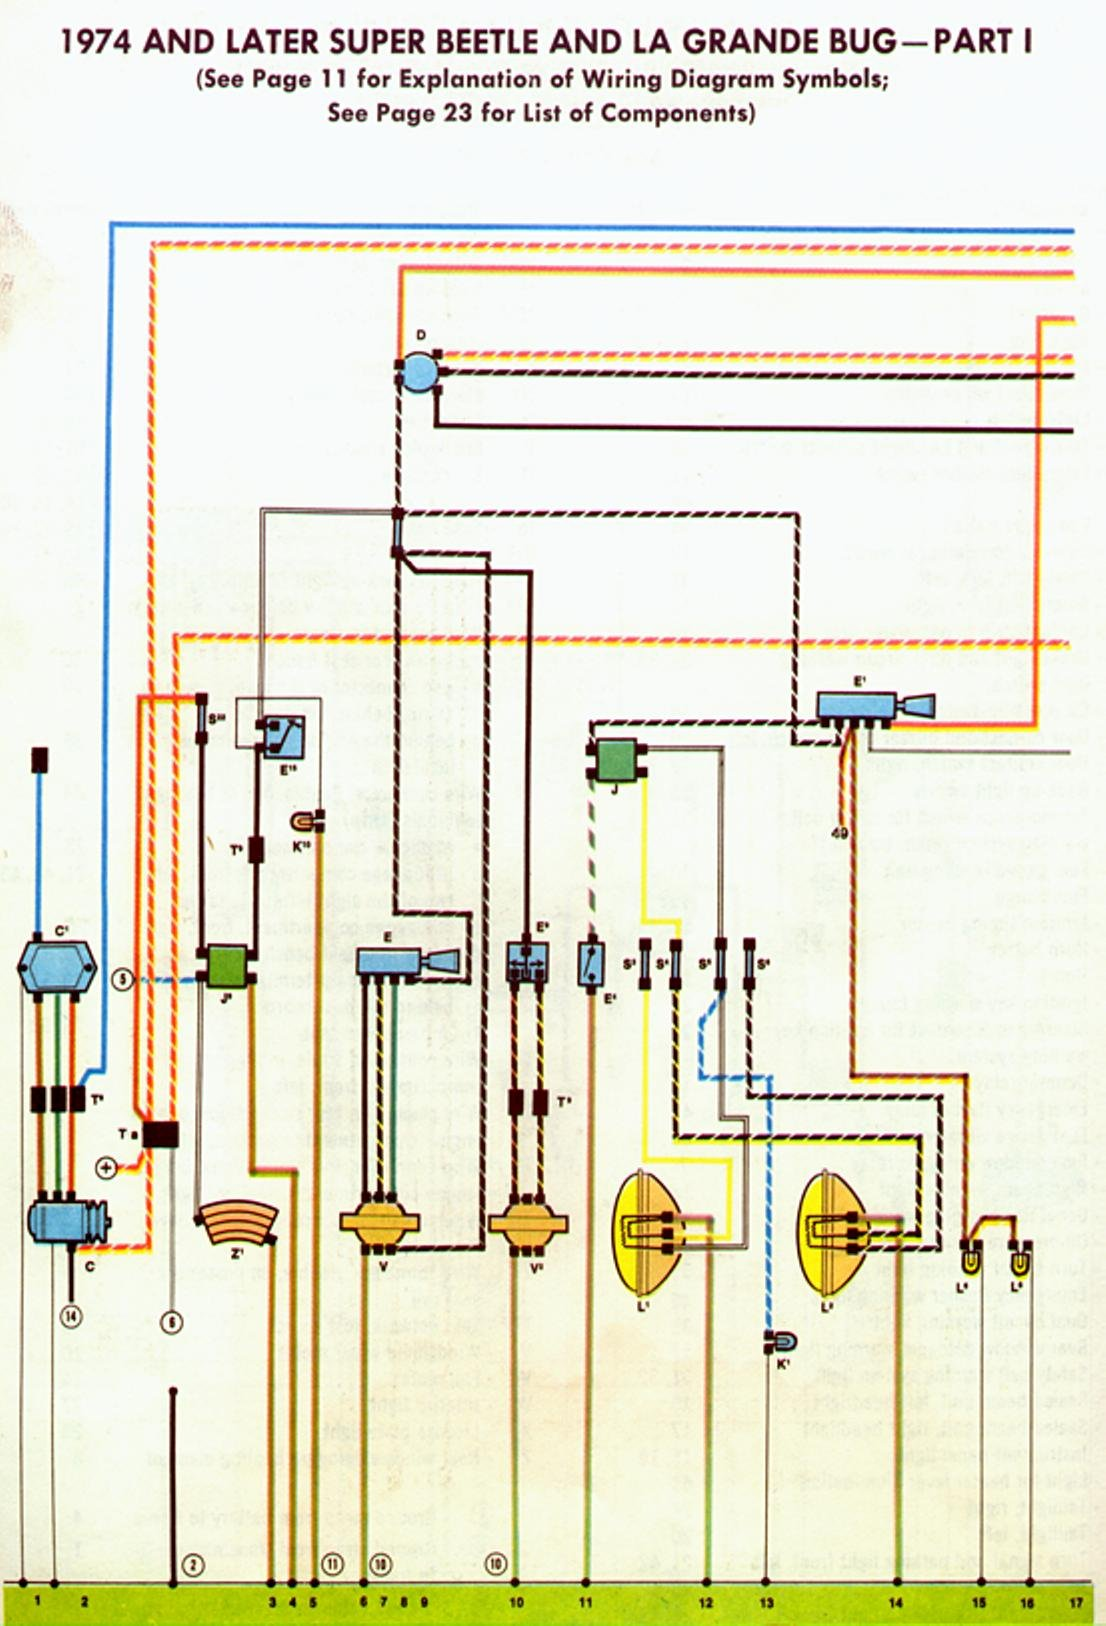 electronic wiring diagram symbols 1978 vw bug fuel injected easy to read wire diagram.